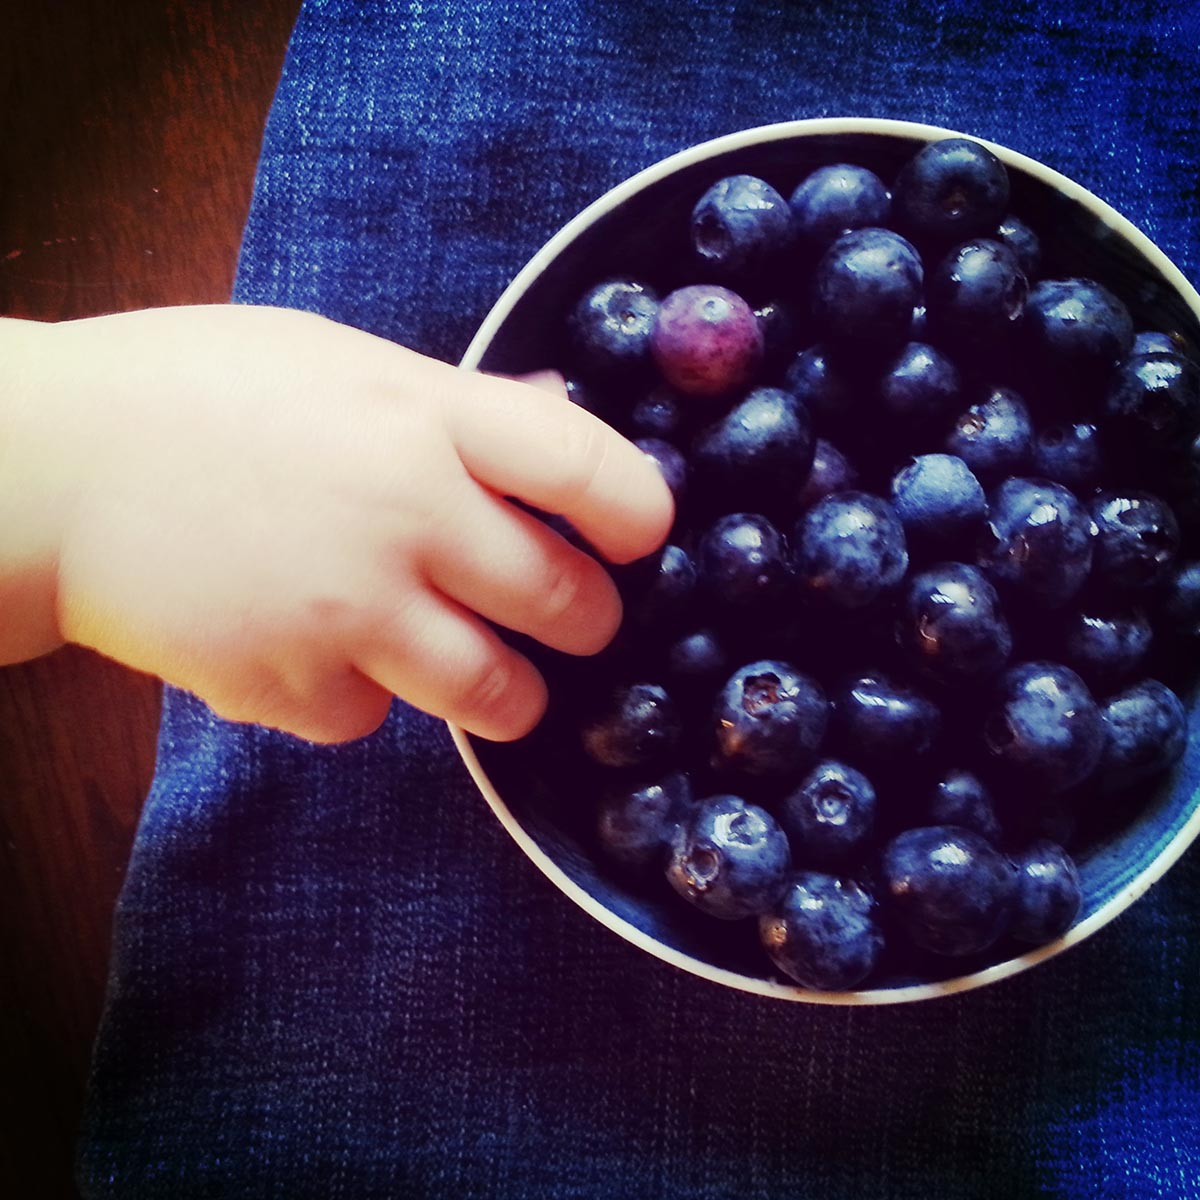 Free stock photo Child's hand reaching for blue berries in a bowl